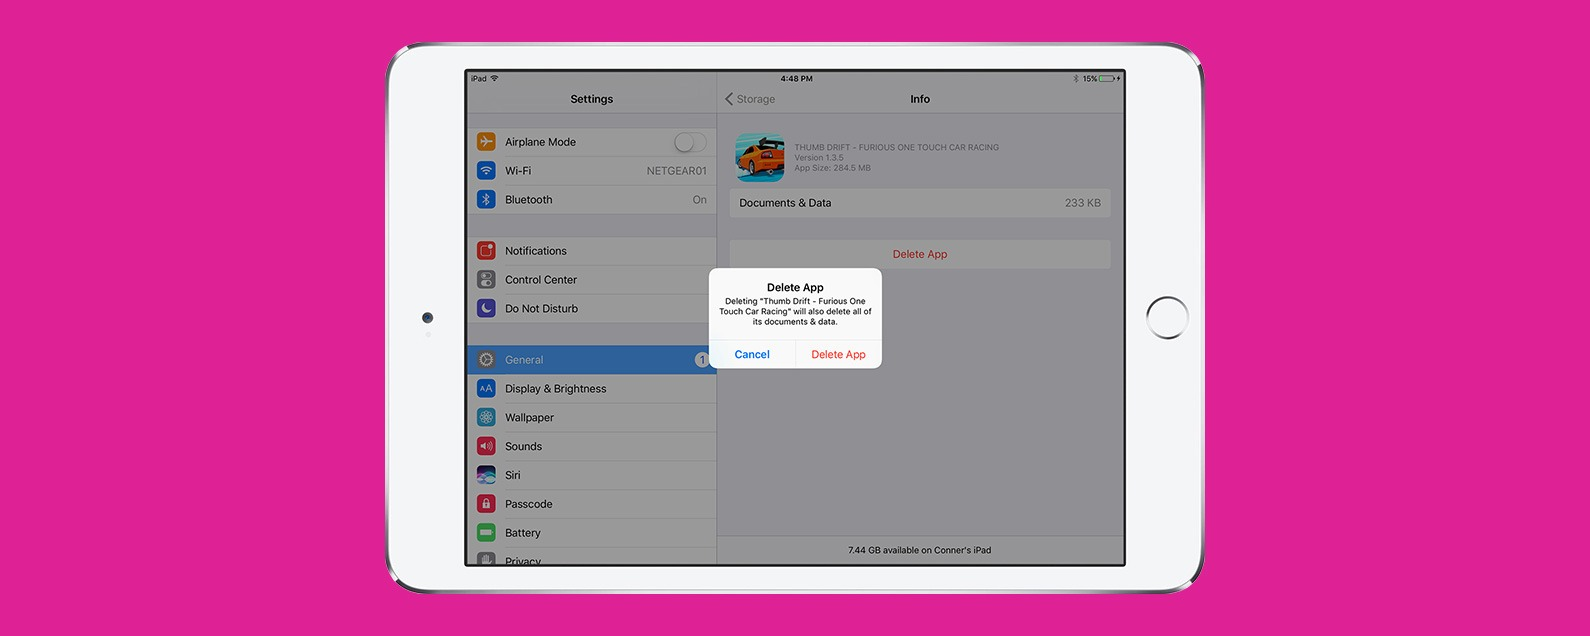 Delete remove uninstall how to get rid of apps on ipad deleting uninstalling offloading removing whatever you call it getting rid of unused and unwanted apps on your ipad can be done the same way as on your ccuart Image collections